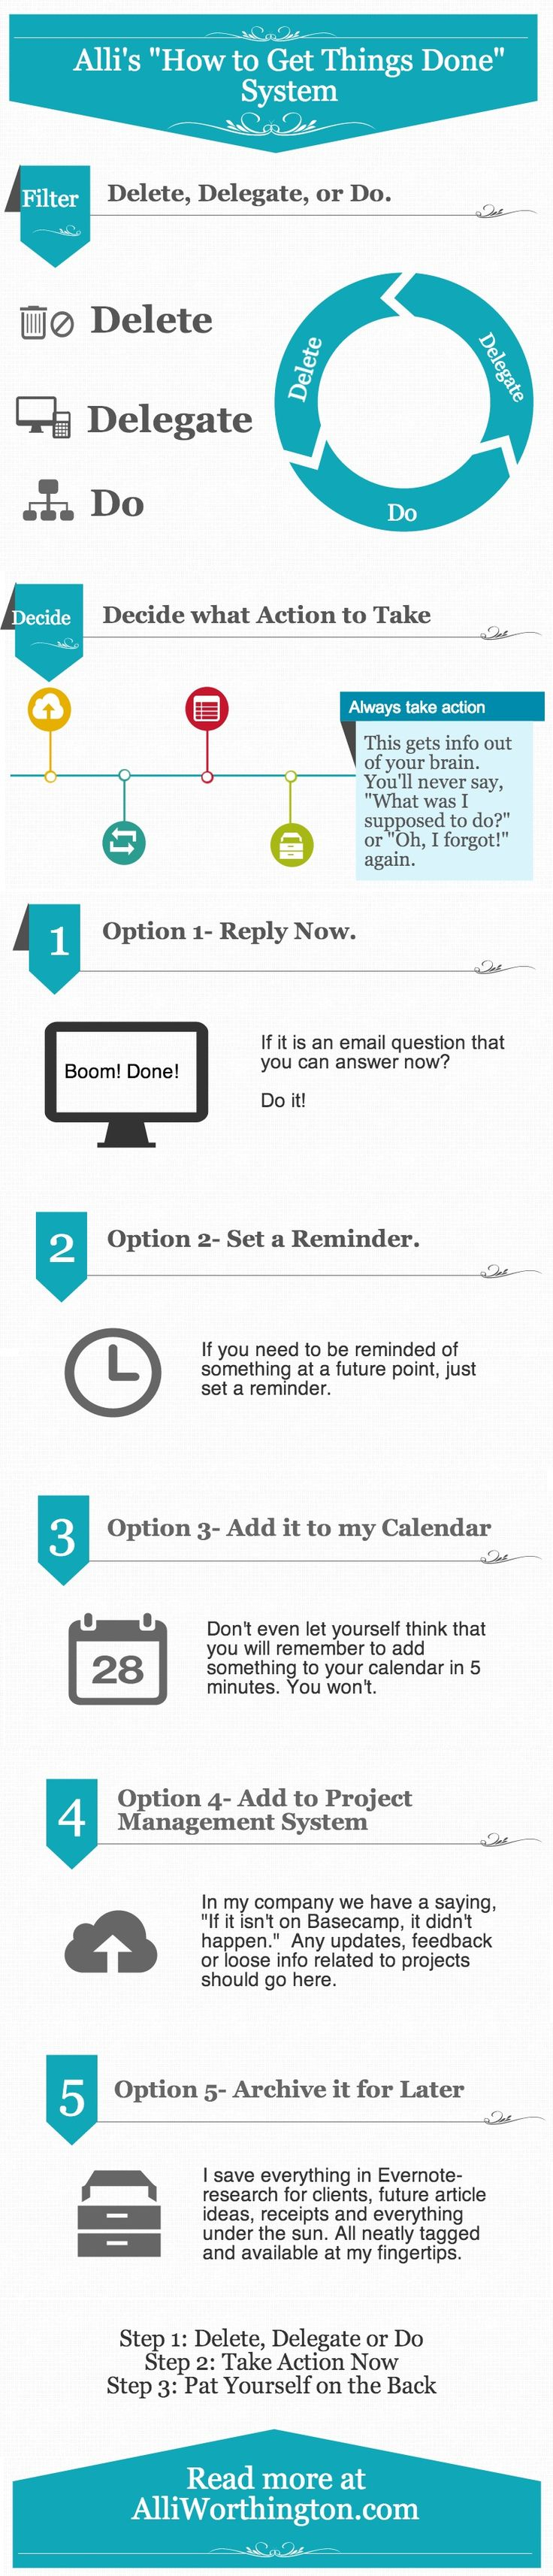 How to get organized and get things done.